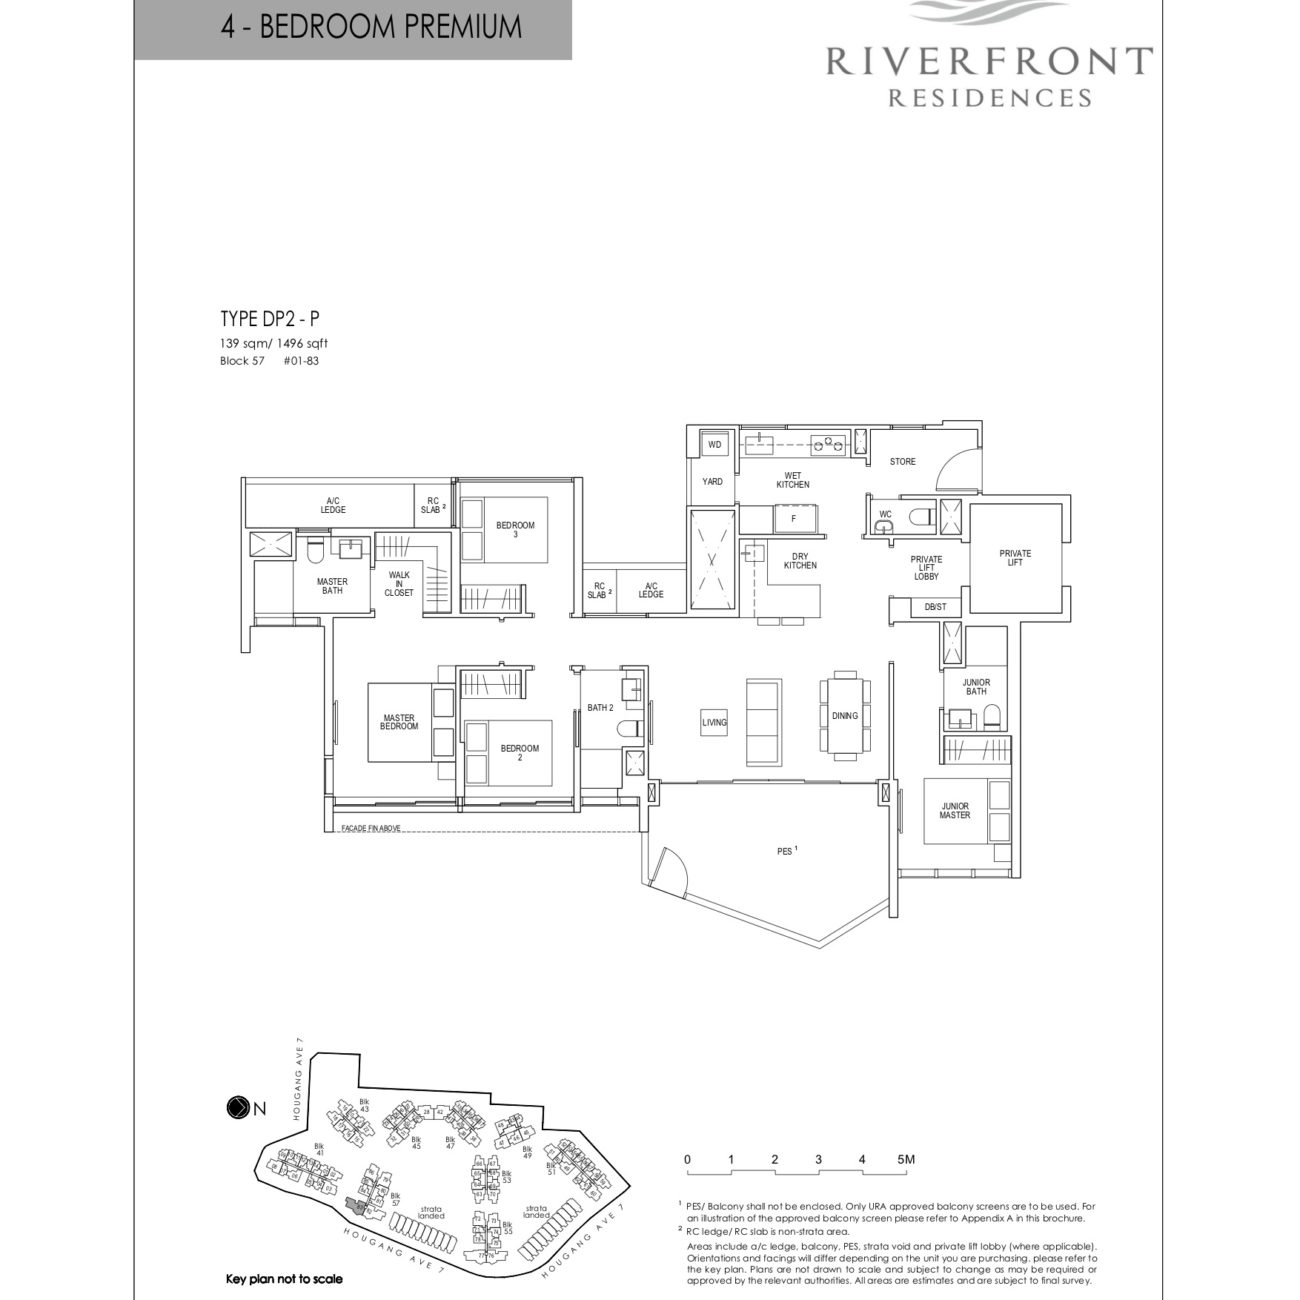 riverfront-residences-floorplan-4bedroom-premium-dp2